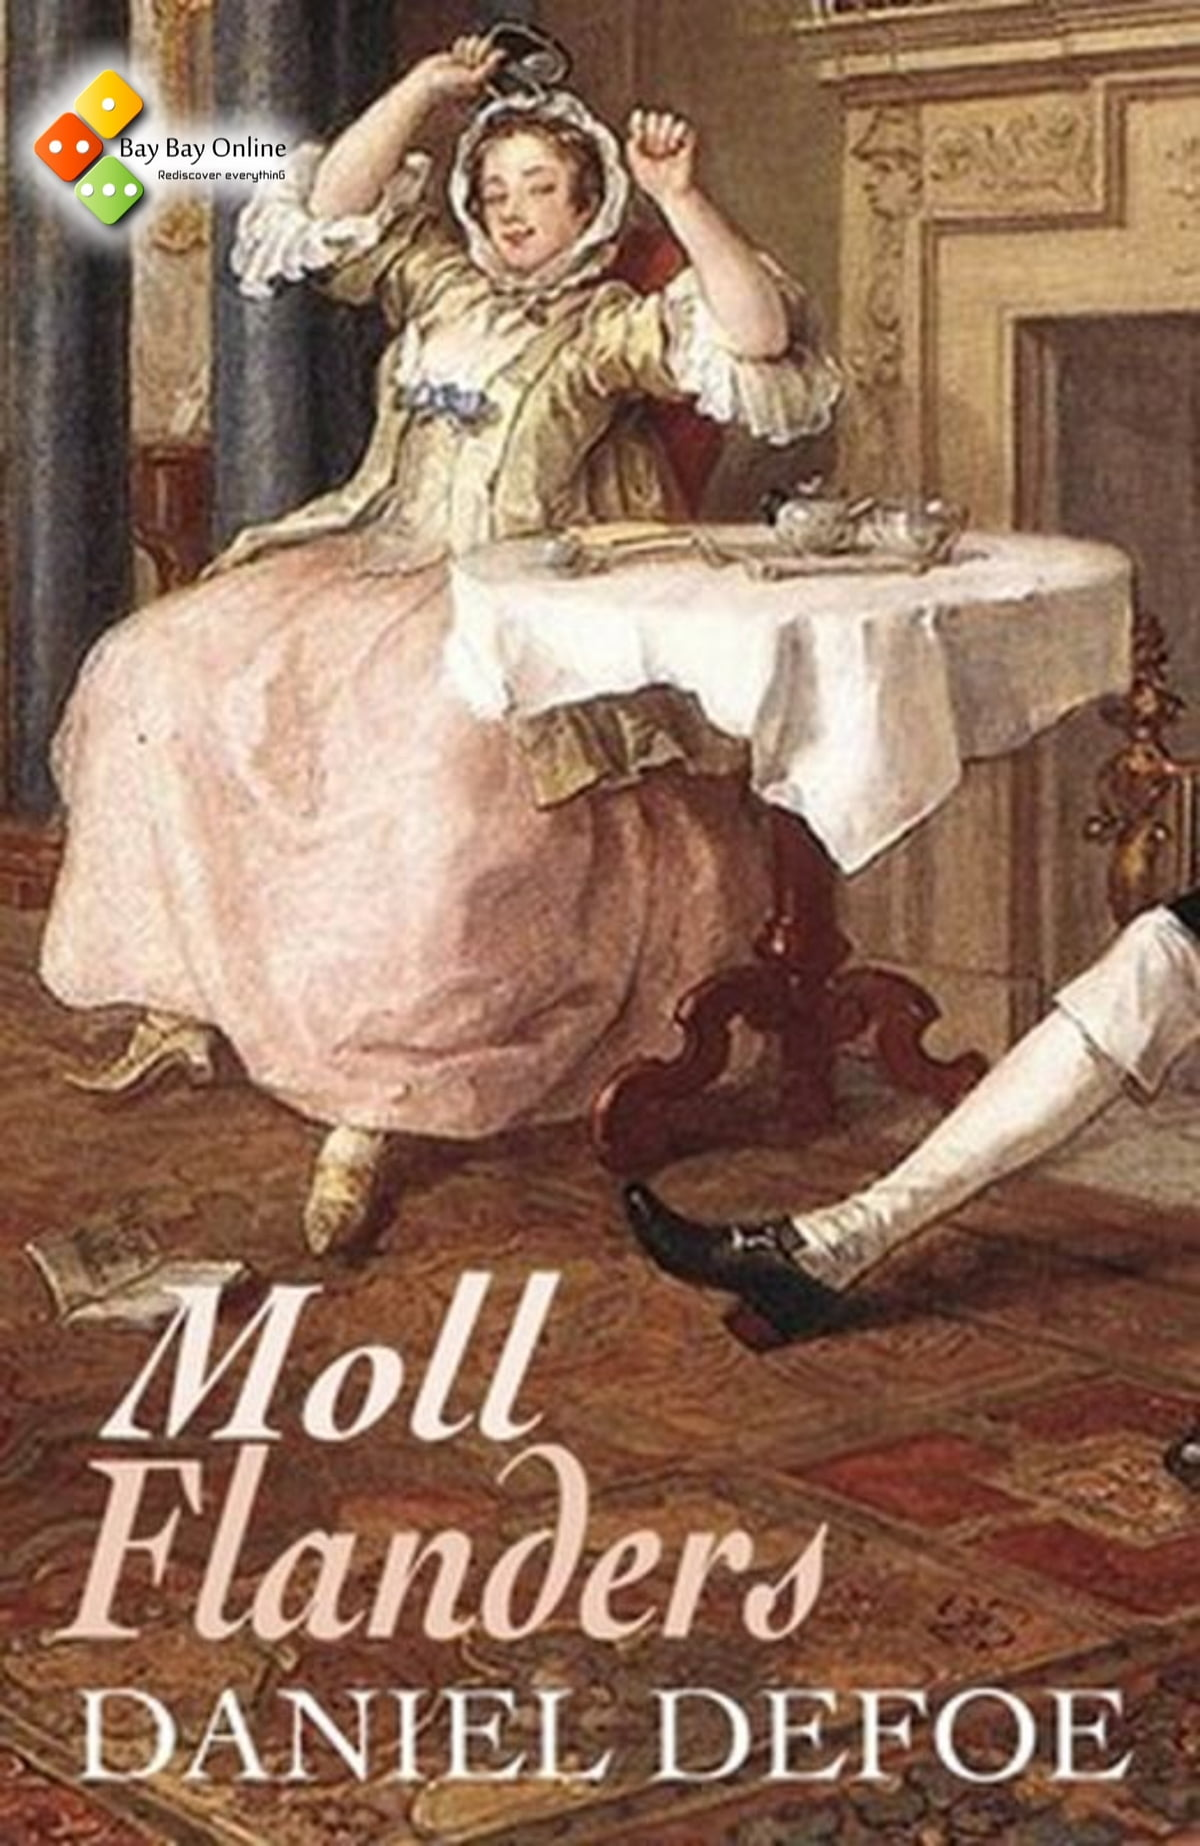 a summary of the novel moll flanders by daniel defoe Defoe's whig views are nevertheless evident in the story of moll, and the novel's full title gives some insight into this and the outline of the plot: the fortunes and misfortunes of the famous moll flanders.